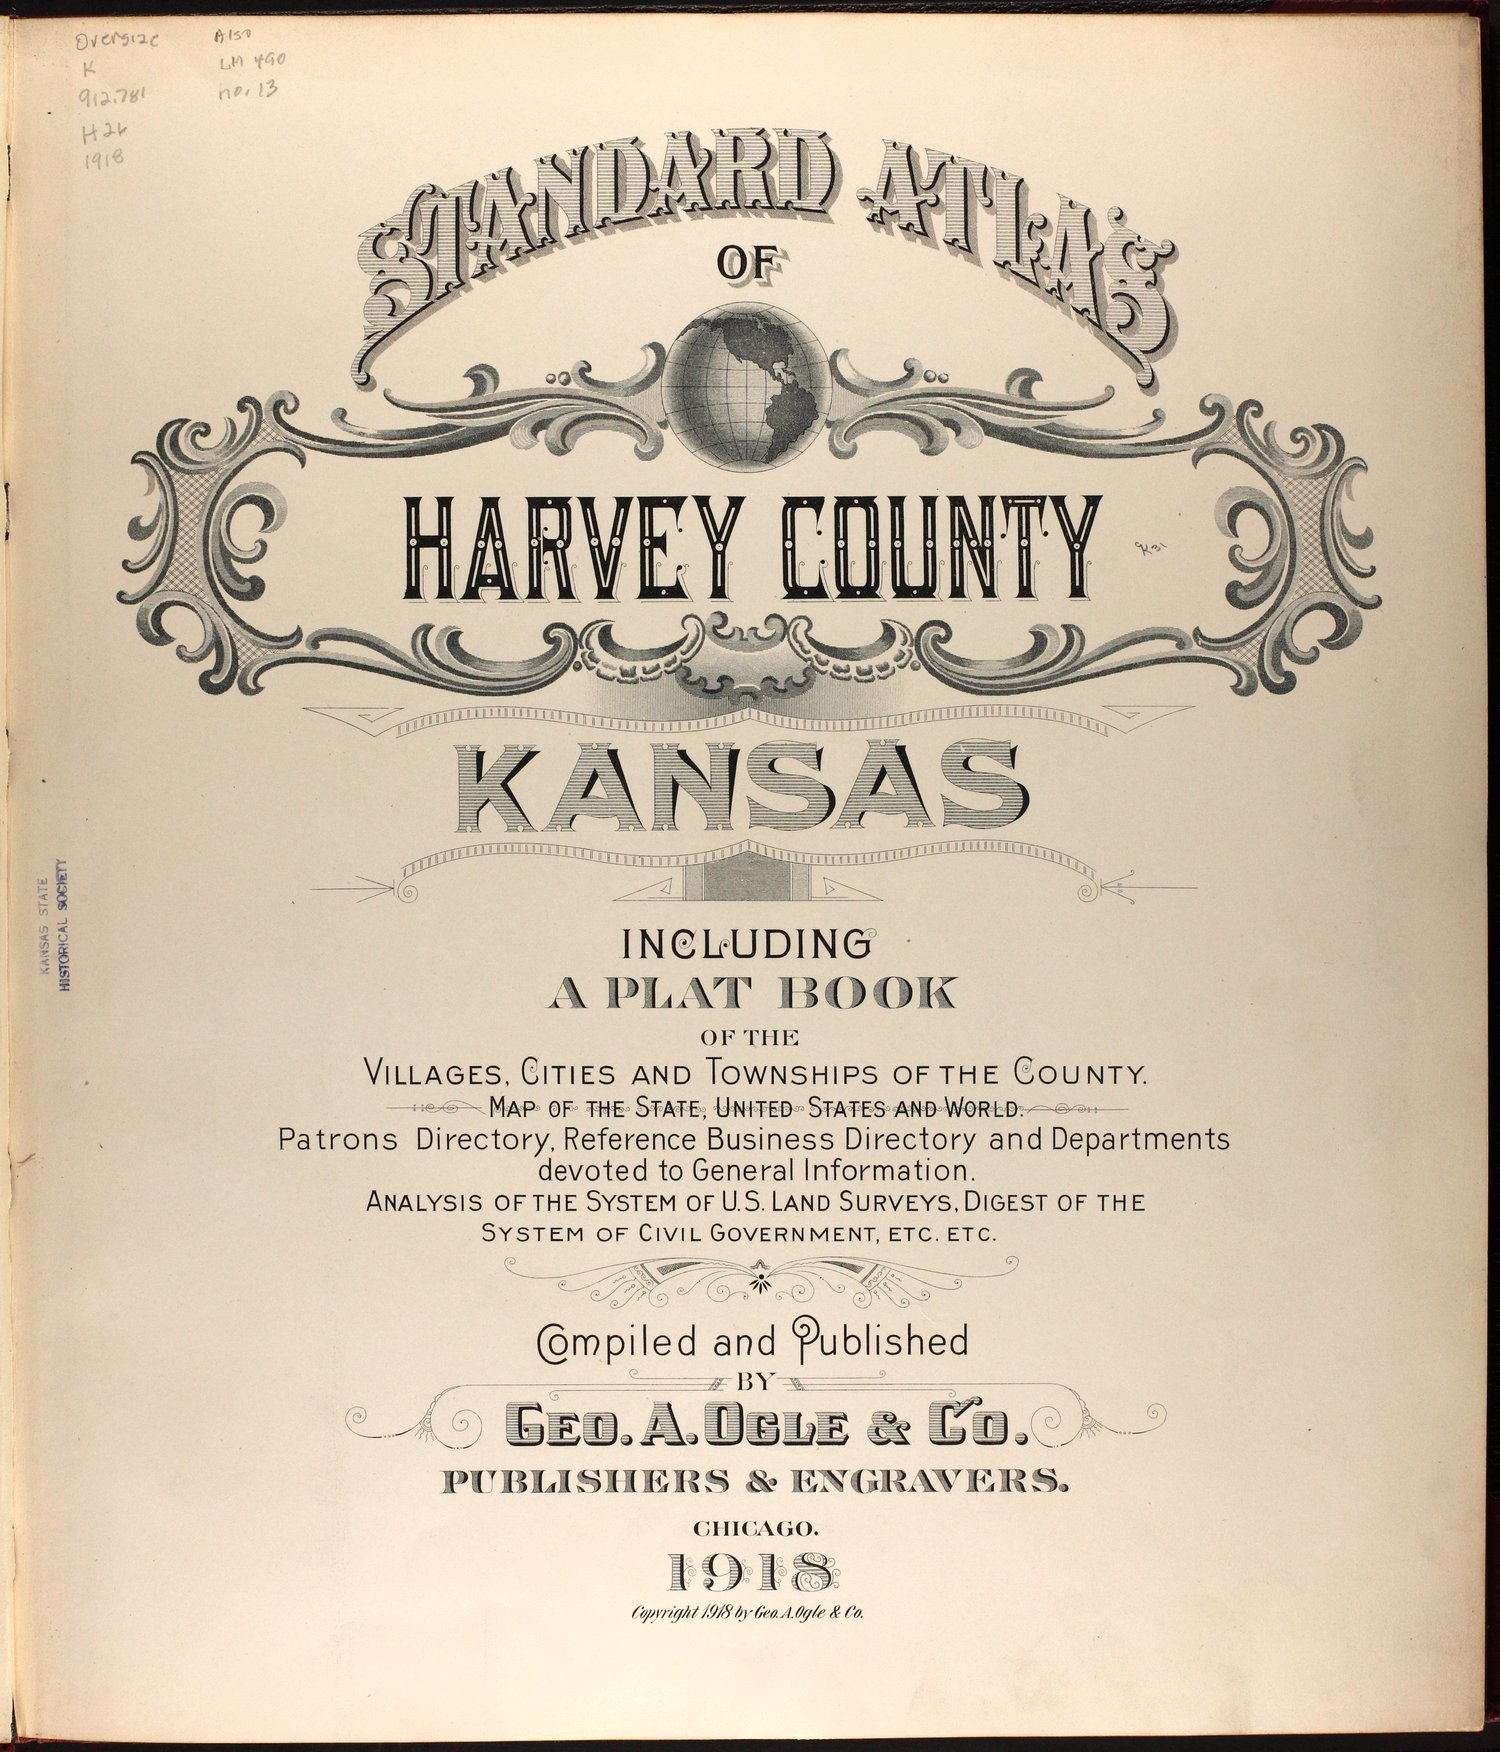 Standard atlas of Harvey County, Kansas - Title Page